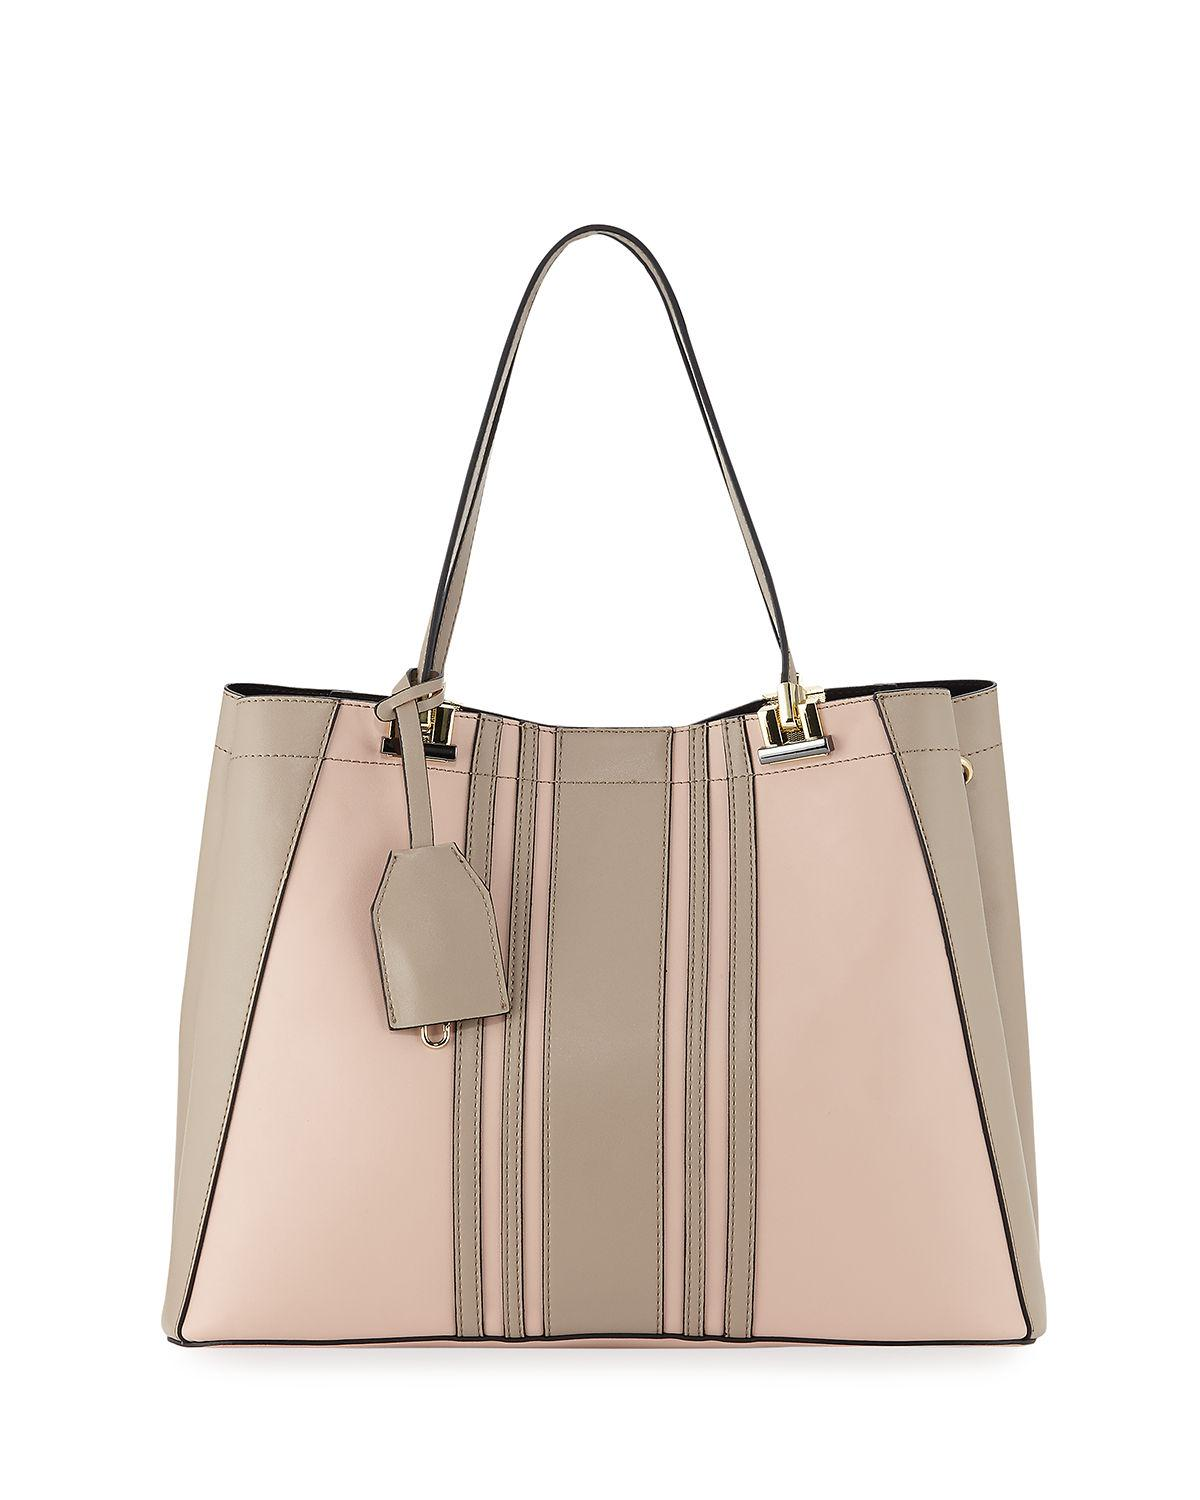 3af68434a Neiman Marcus. Women's Roni Faux-leather Colorblock Satchel Bag